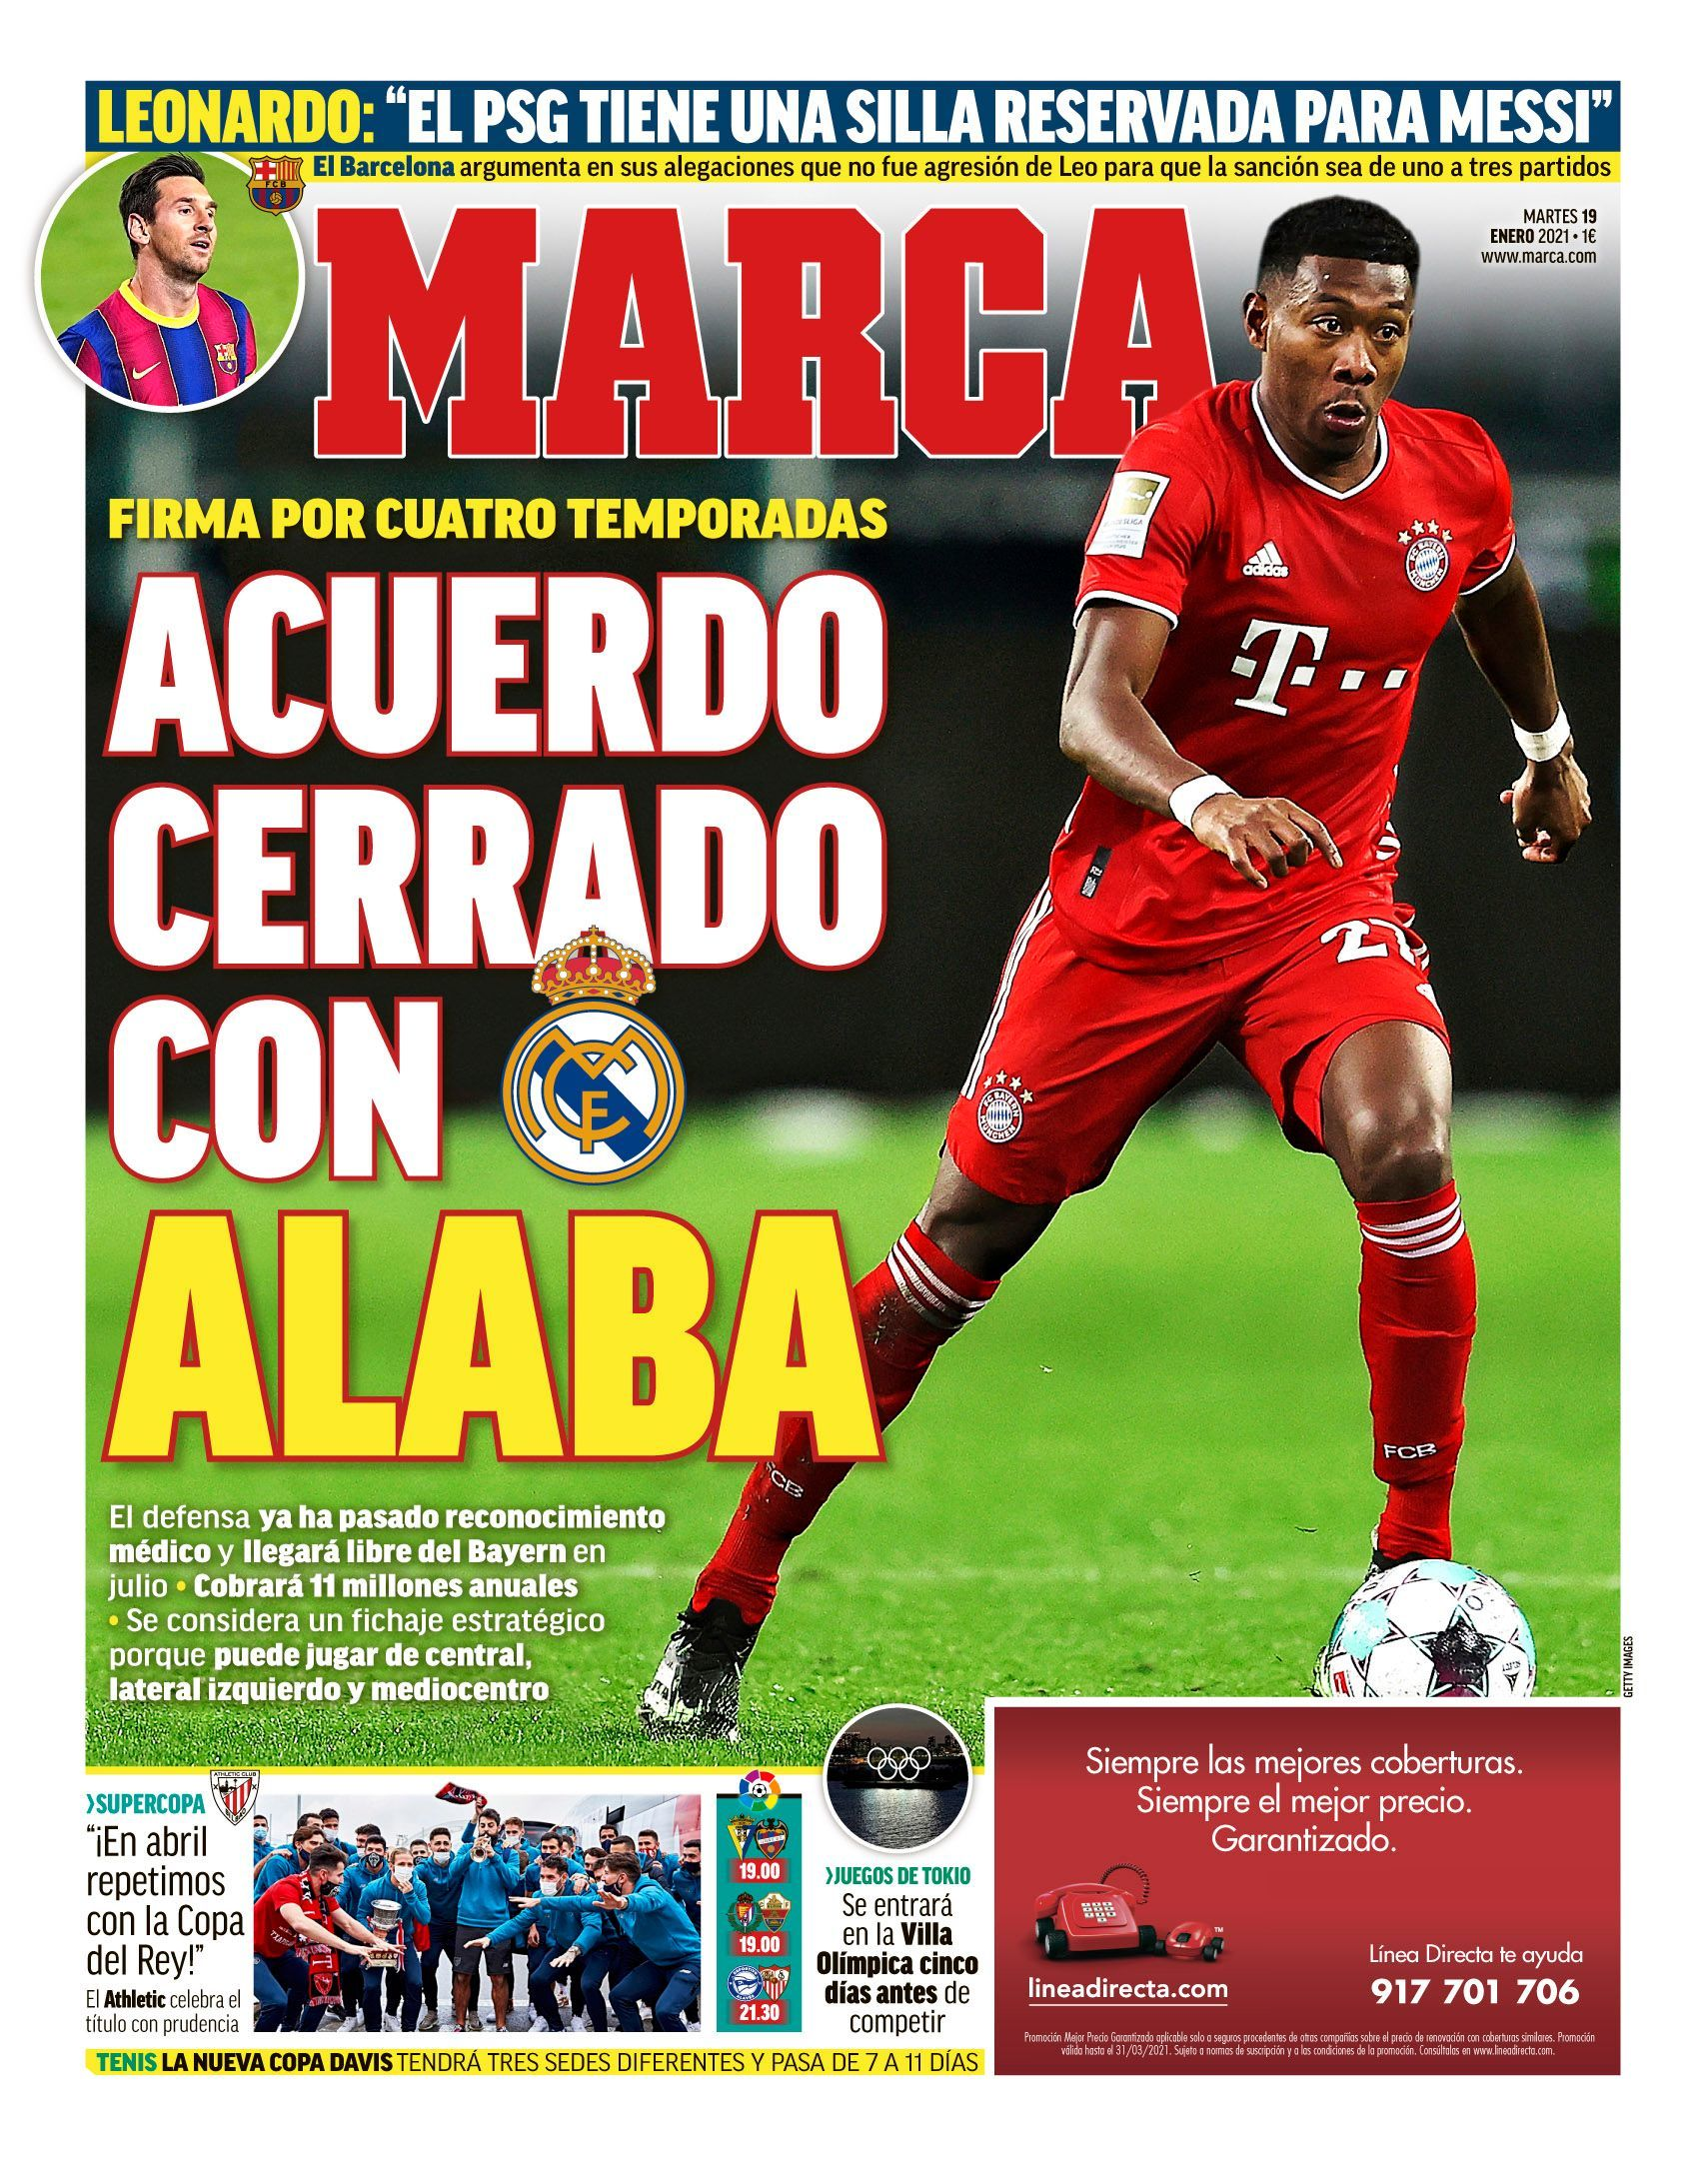 Real Madrid amarró a David Alaba para la próxima temporada